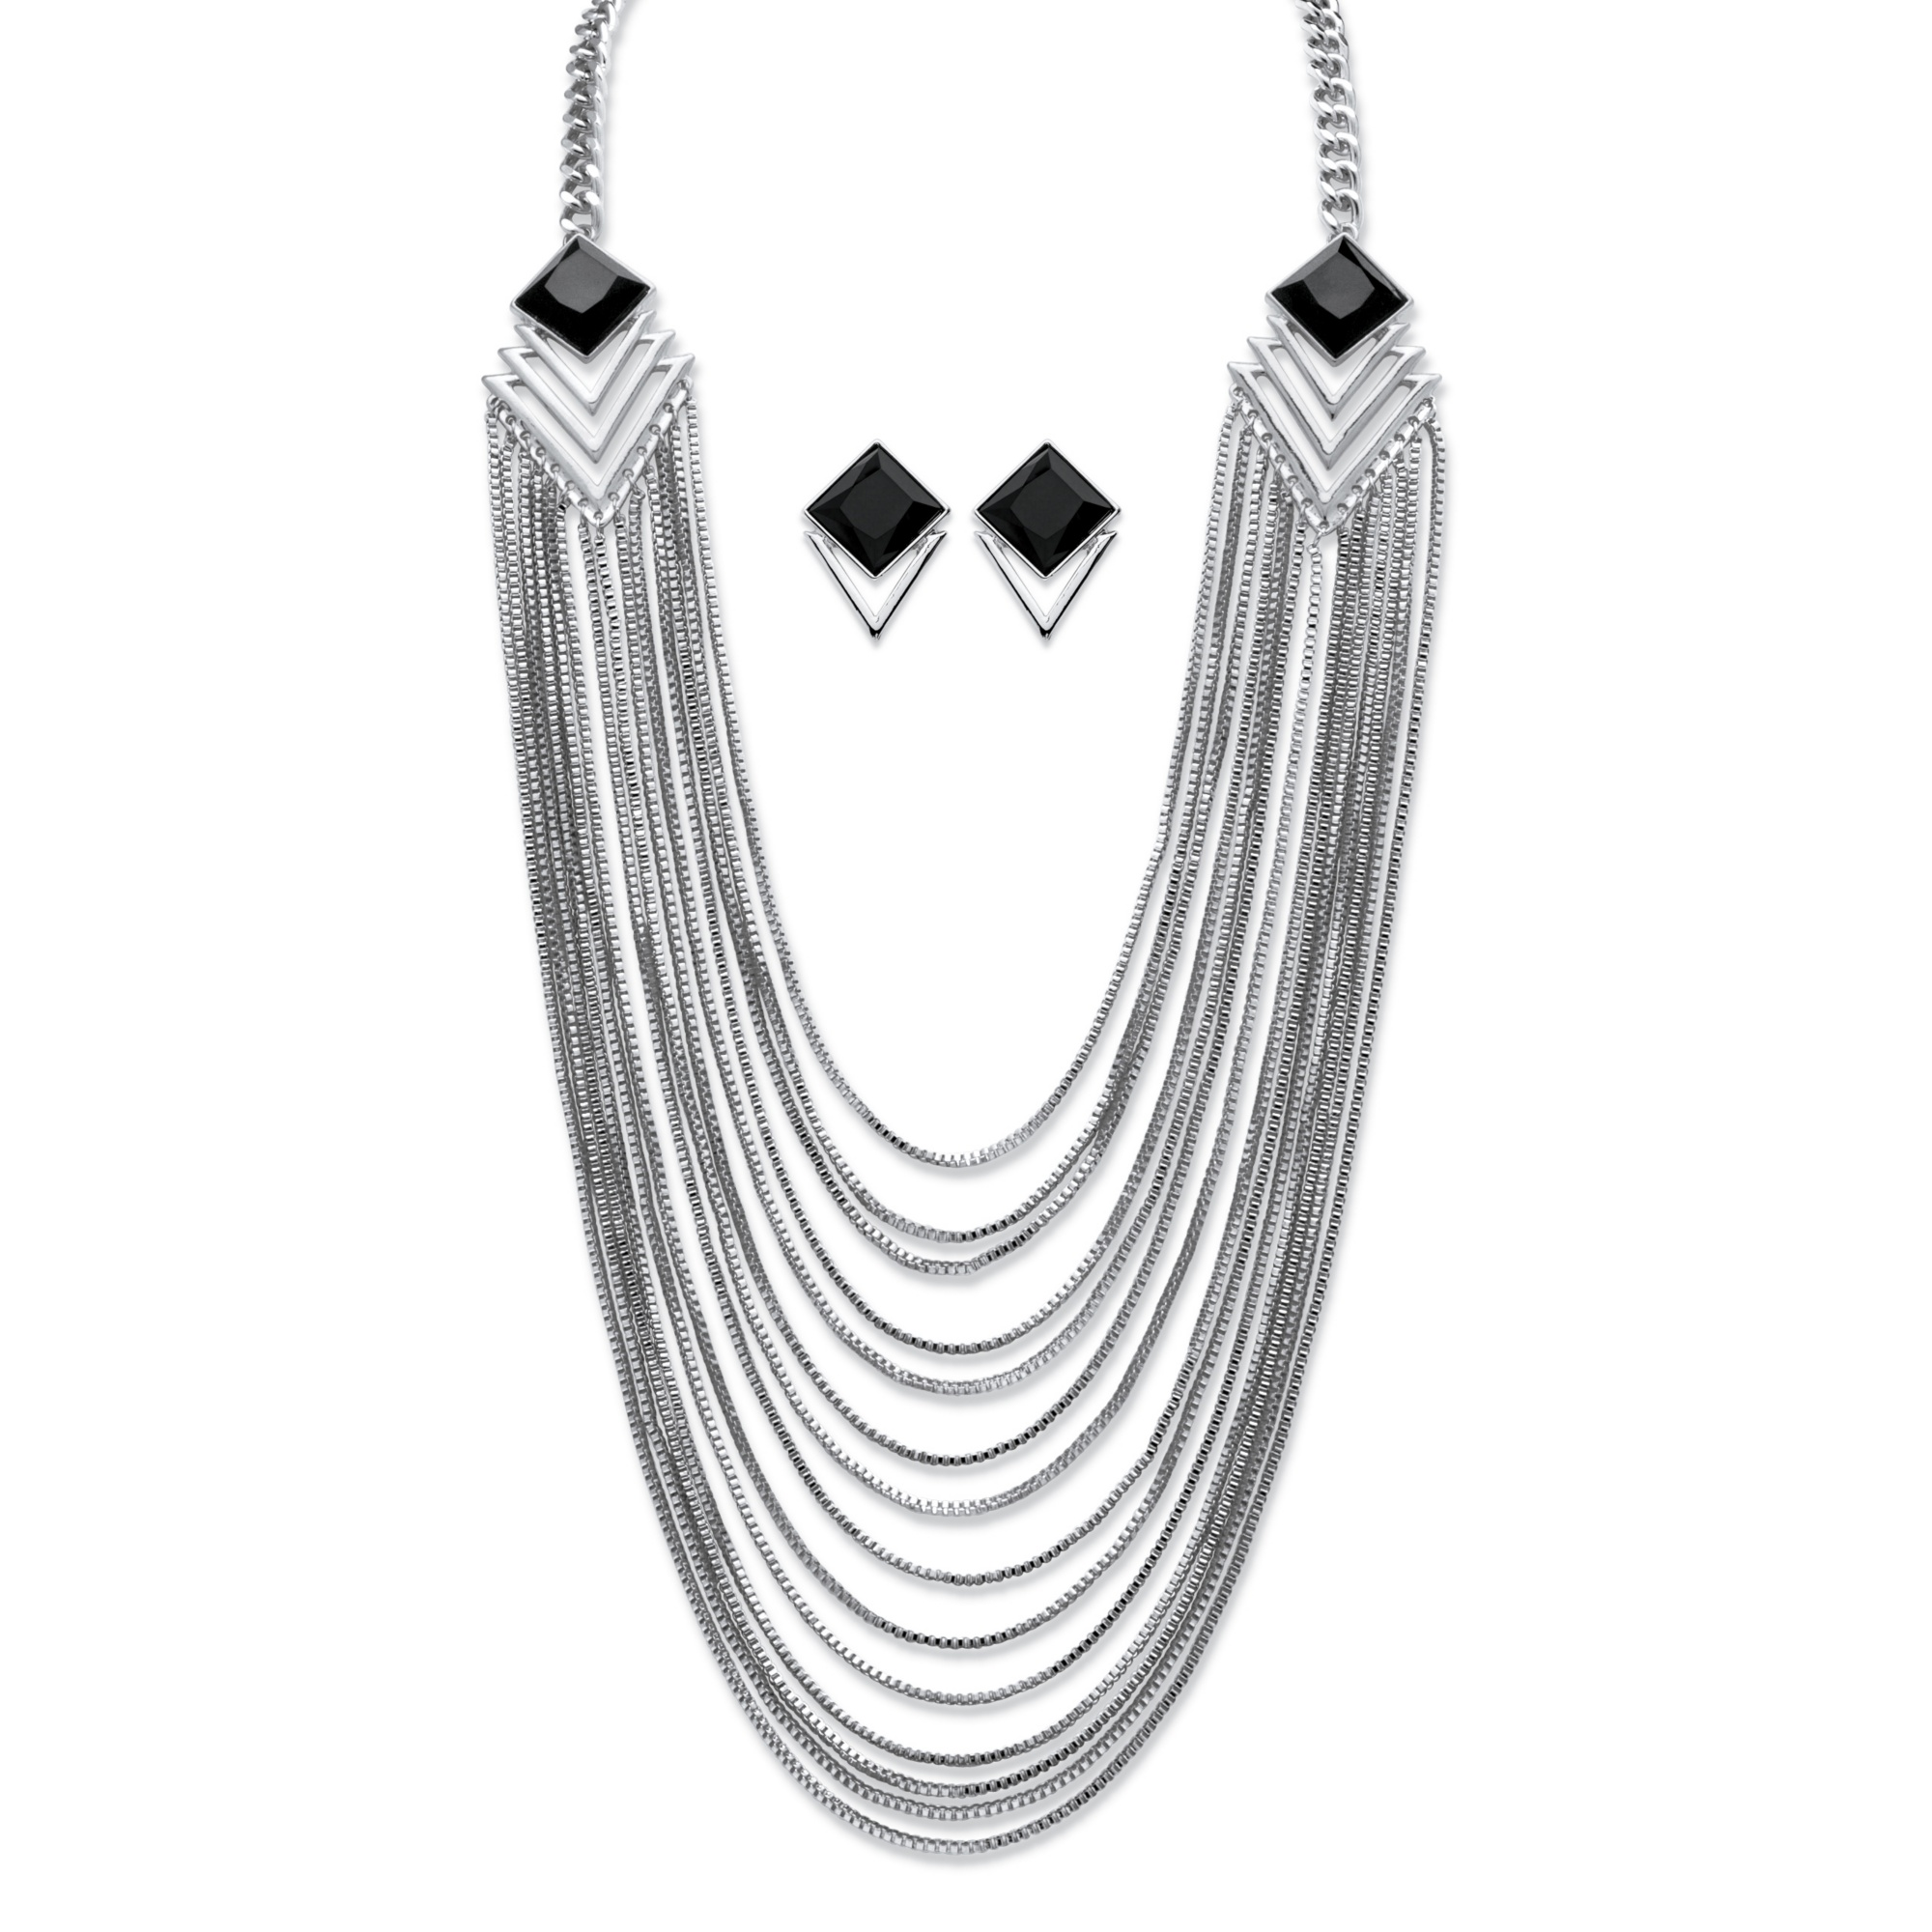 Black Crystal Art Deco-Inspired Multi-Strand Waterfall Necklace and Earrings Set in Silvertone